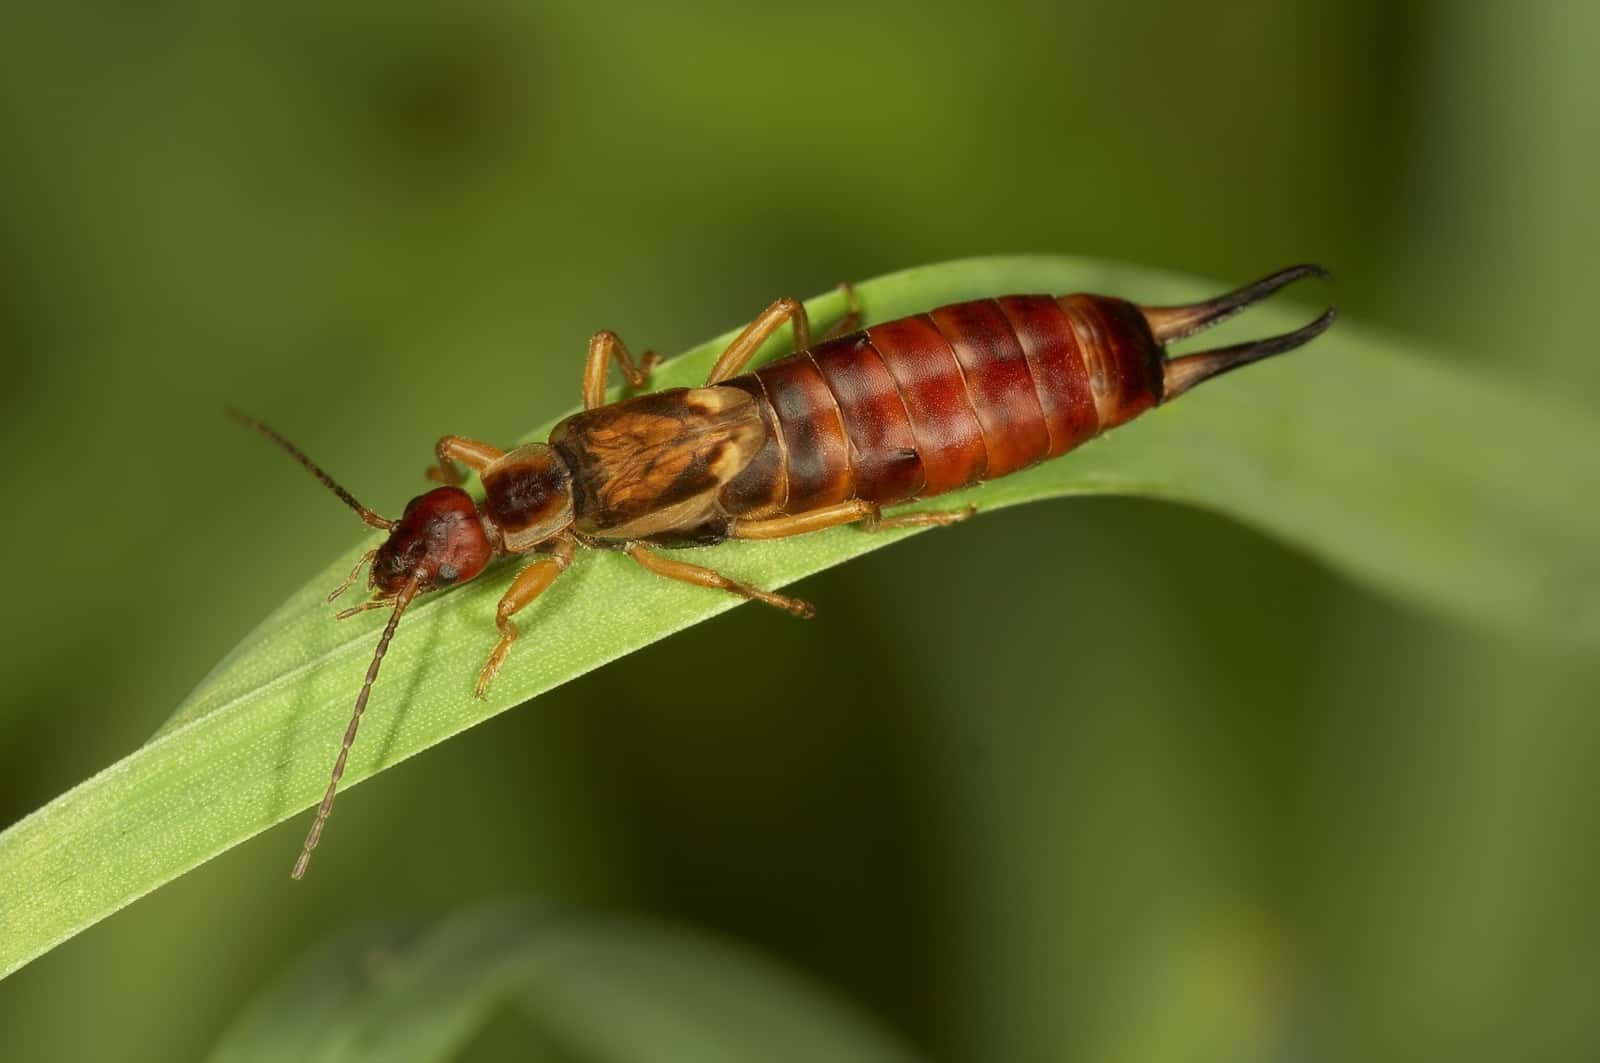 Earwigs: A Guide to Identifying, Preventing and Getting Rid of Earwigs